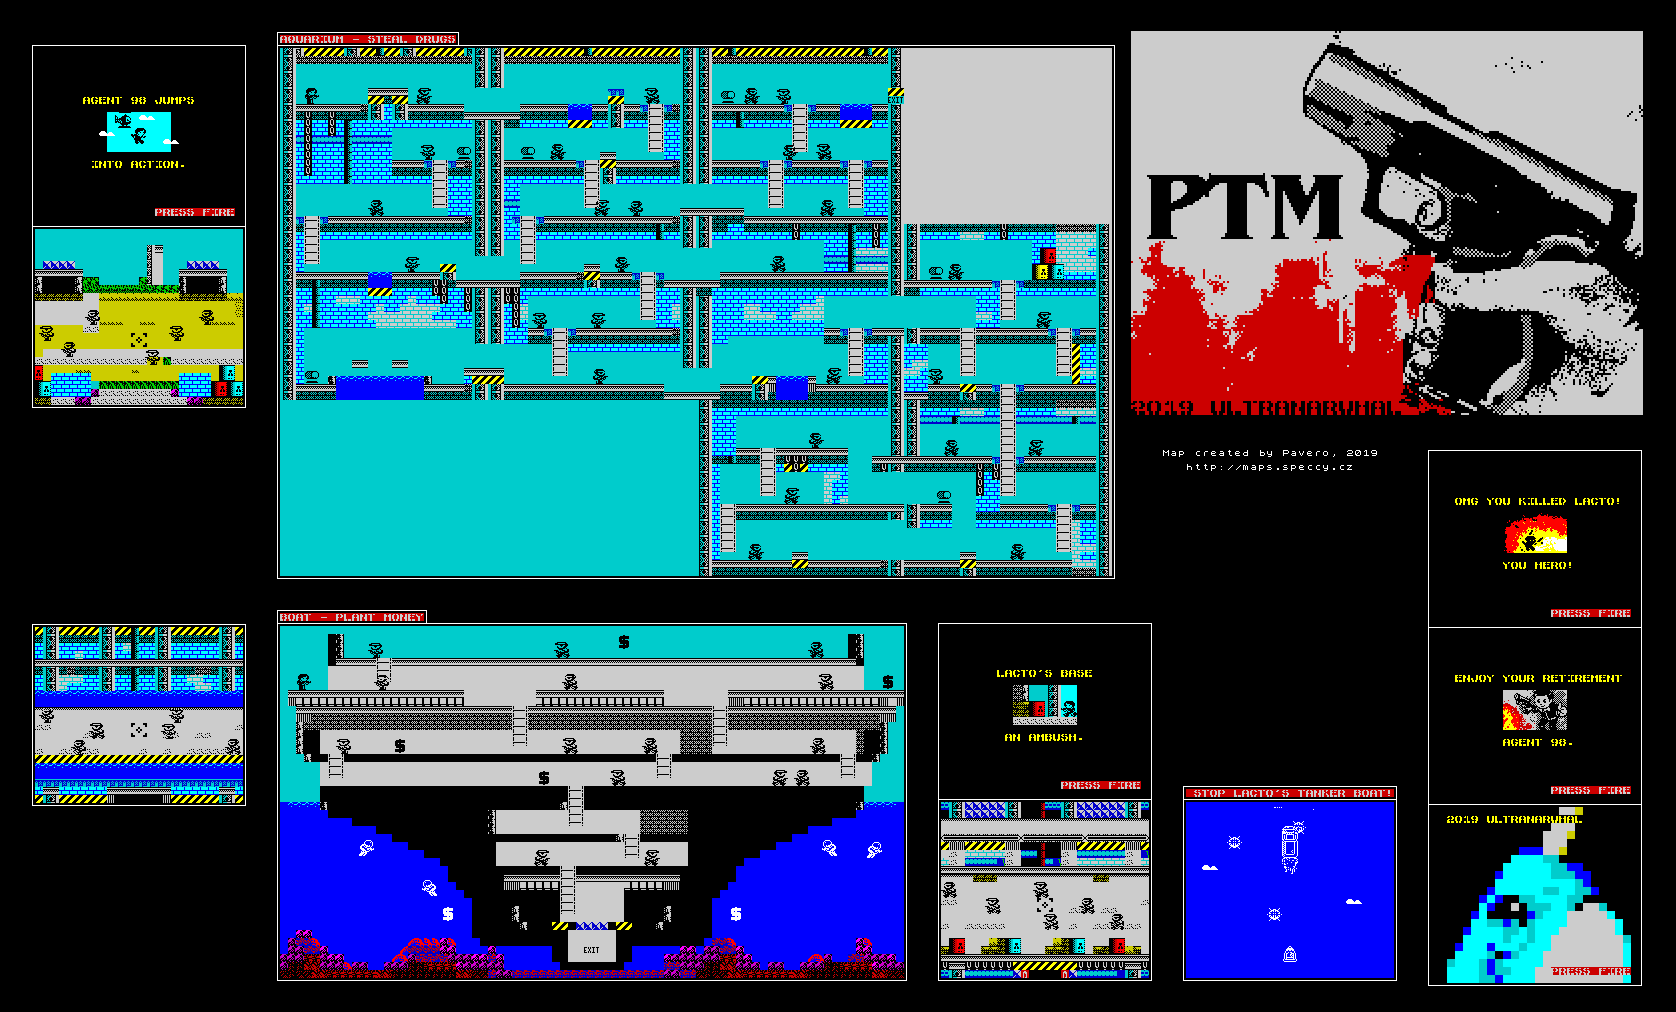 PTM - The Map